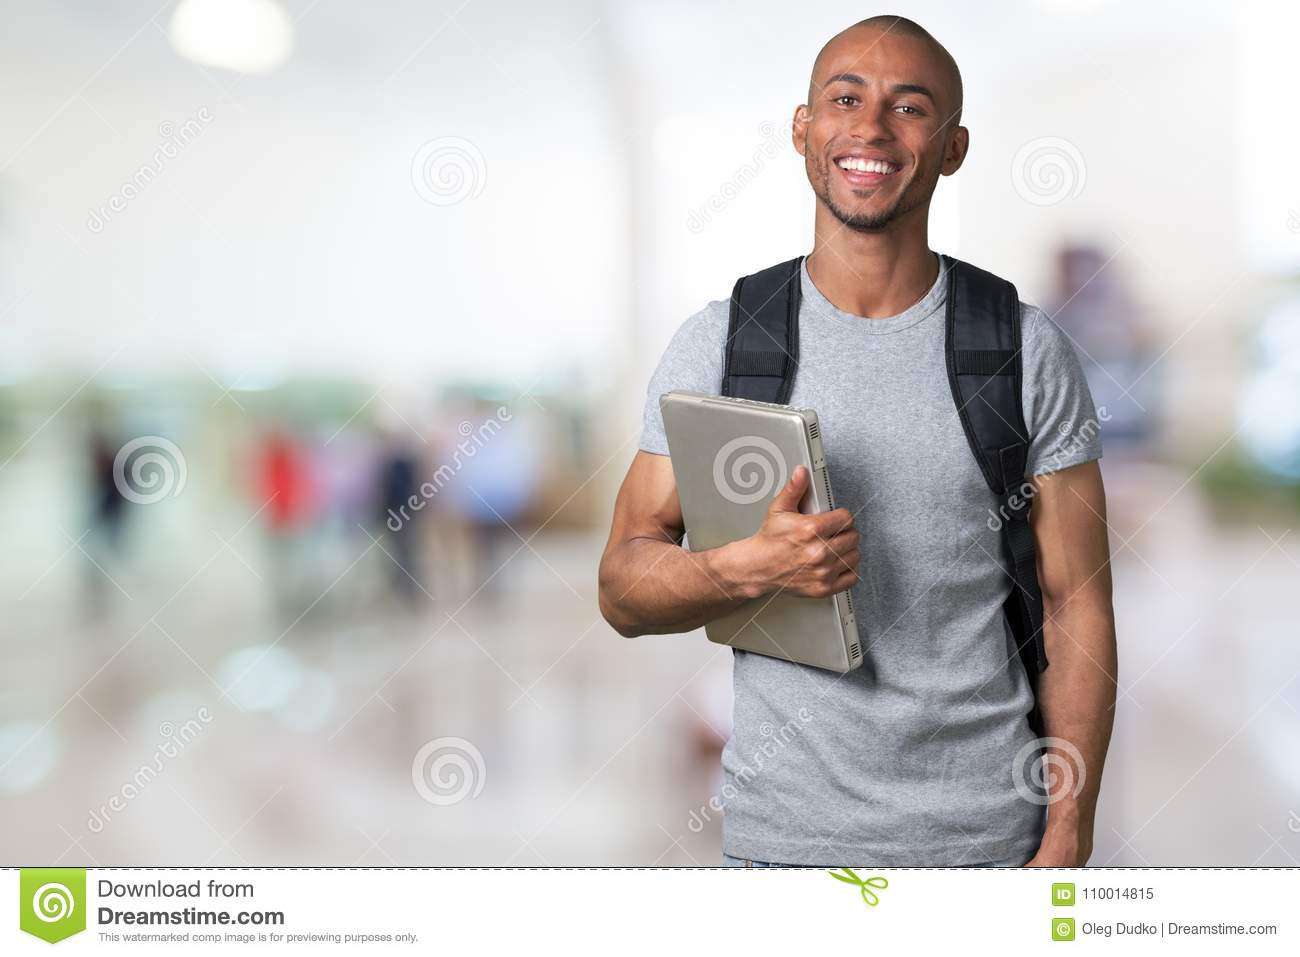 Smiling African Student man with laptop, mall